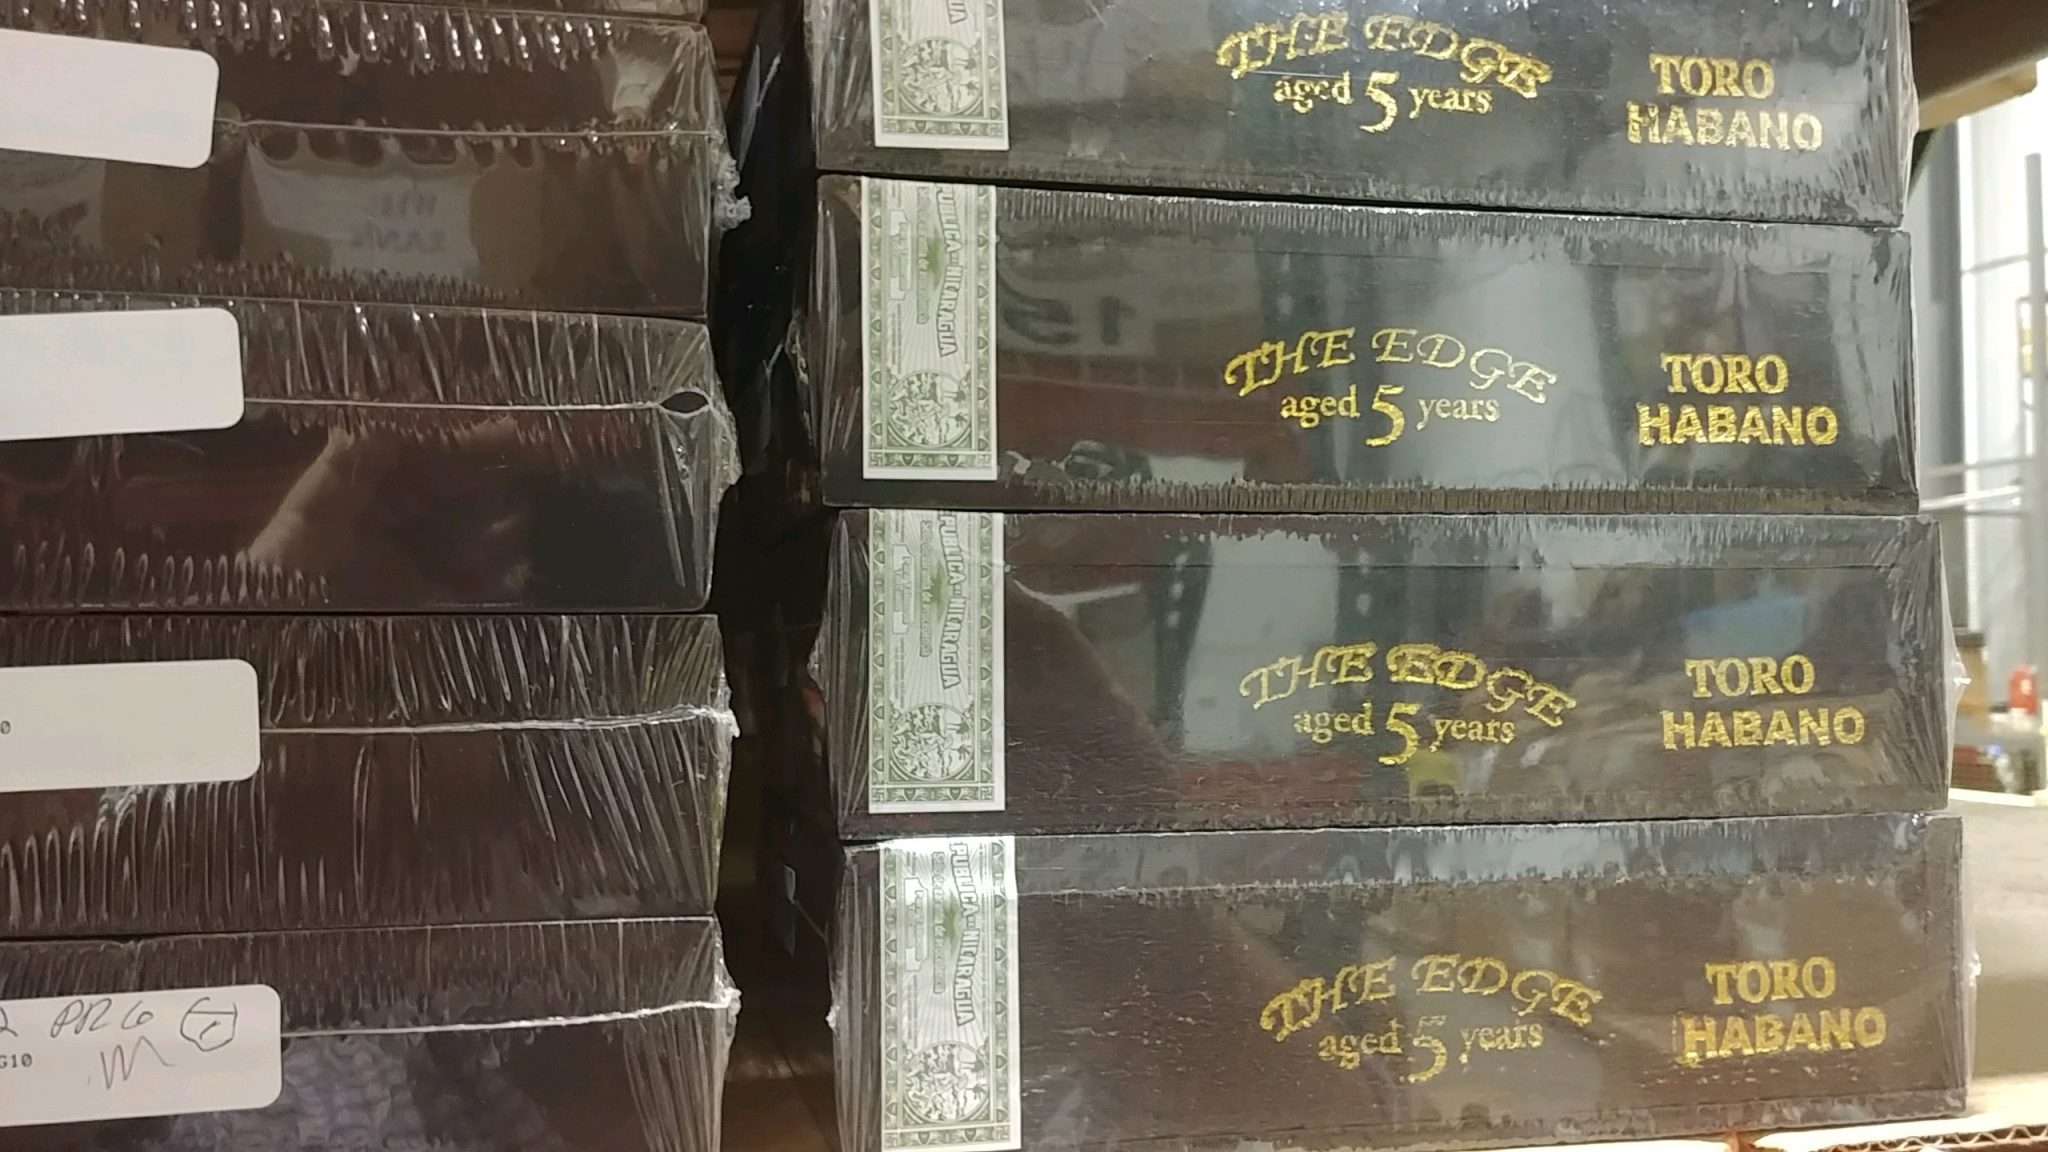 rocky patel the edge habano cigars keeping cigars fresh in cellophane